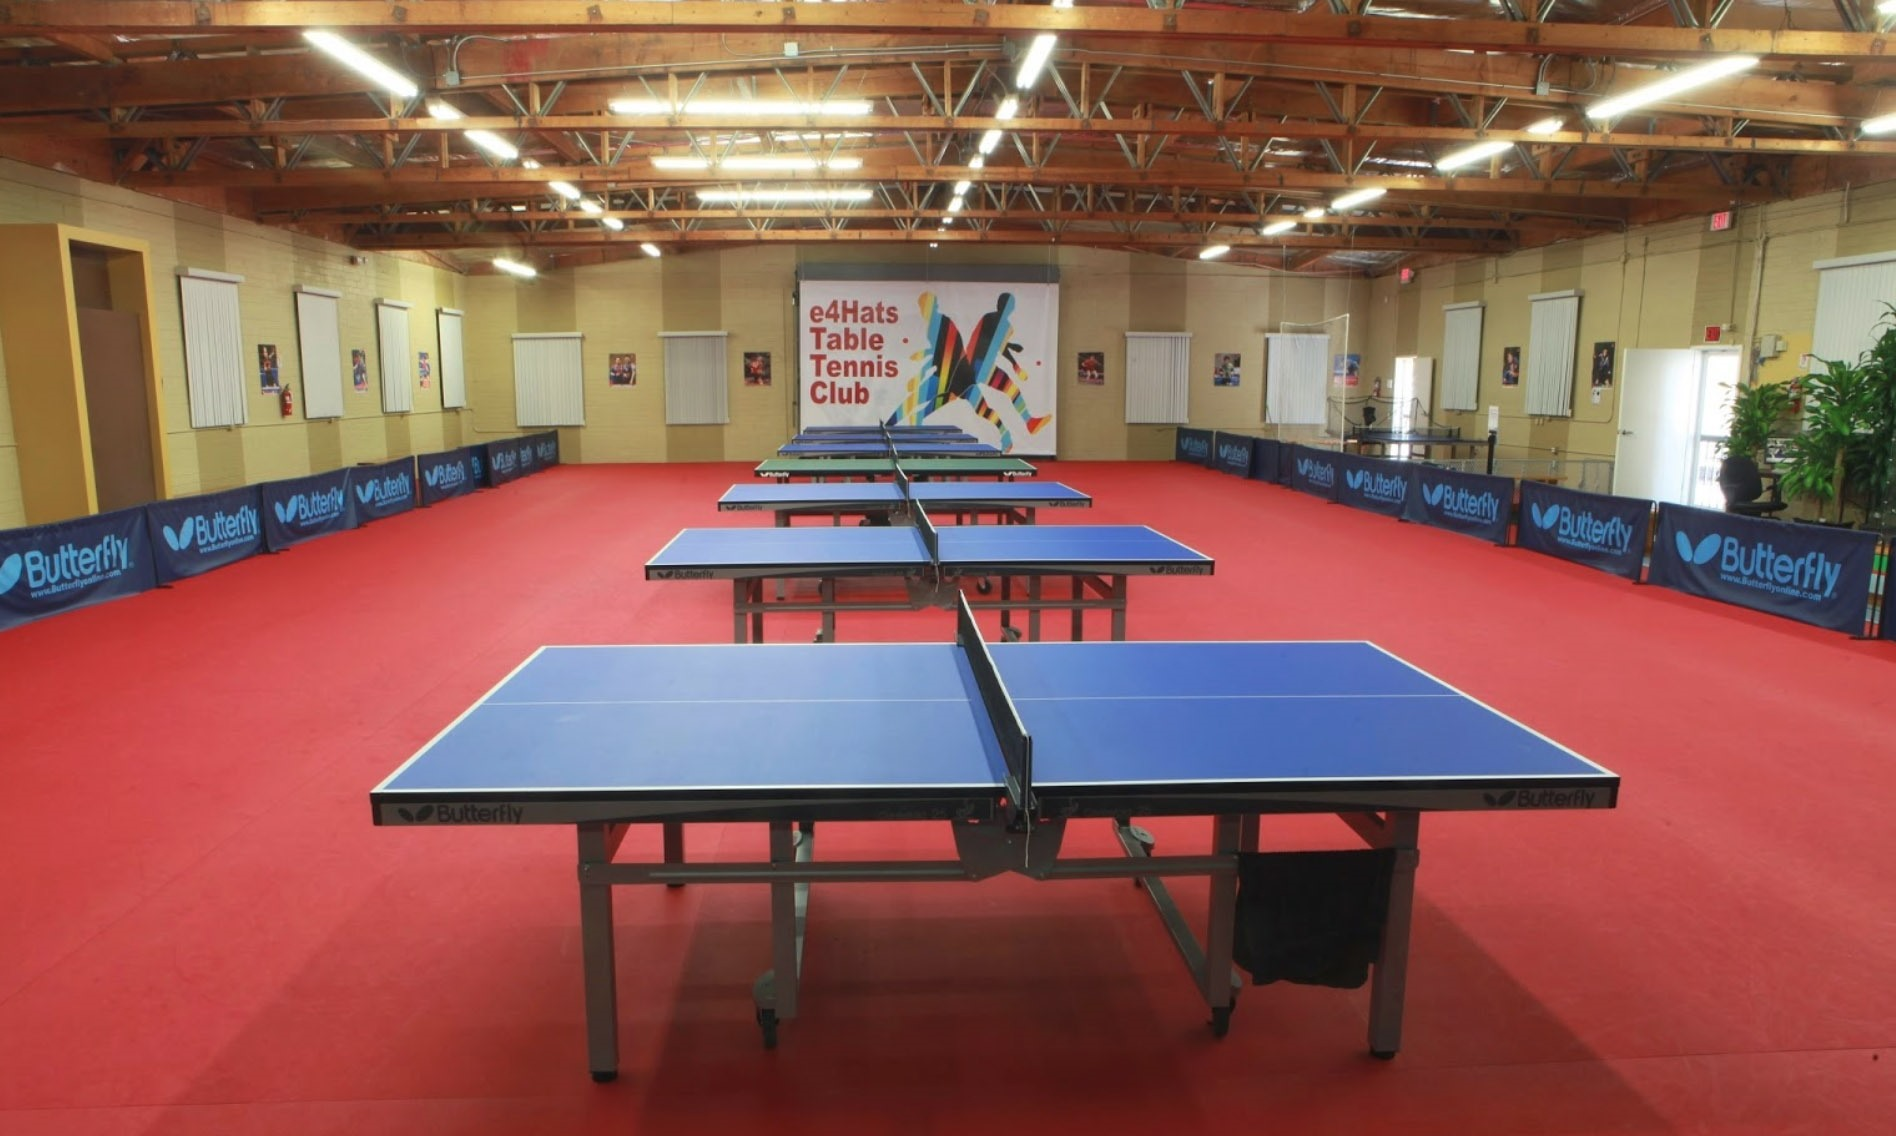 WAB FEATURED CLUB: e4Hats Table Tennis and Pool Billiards Club